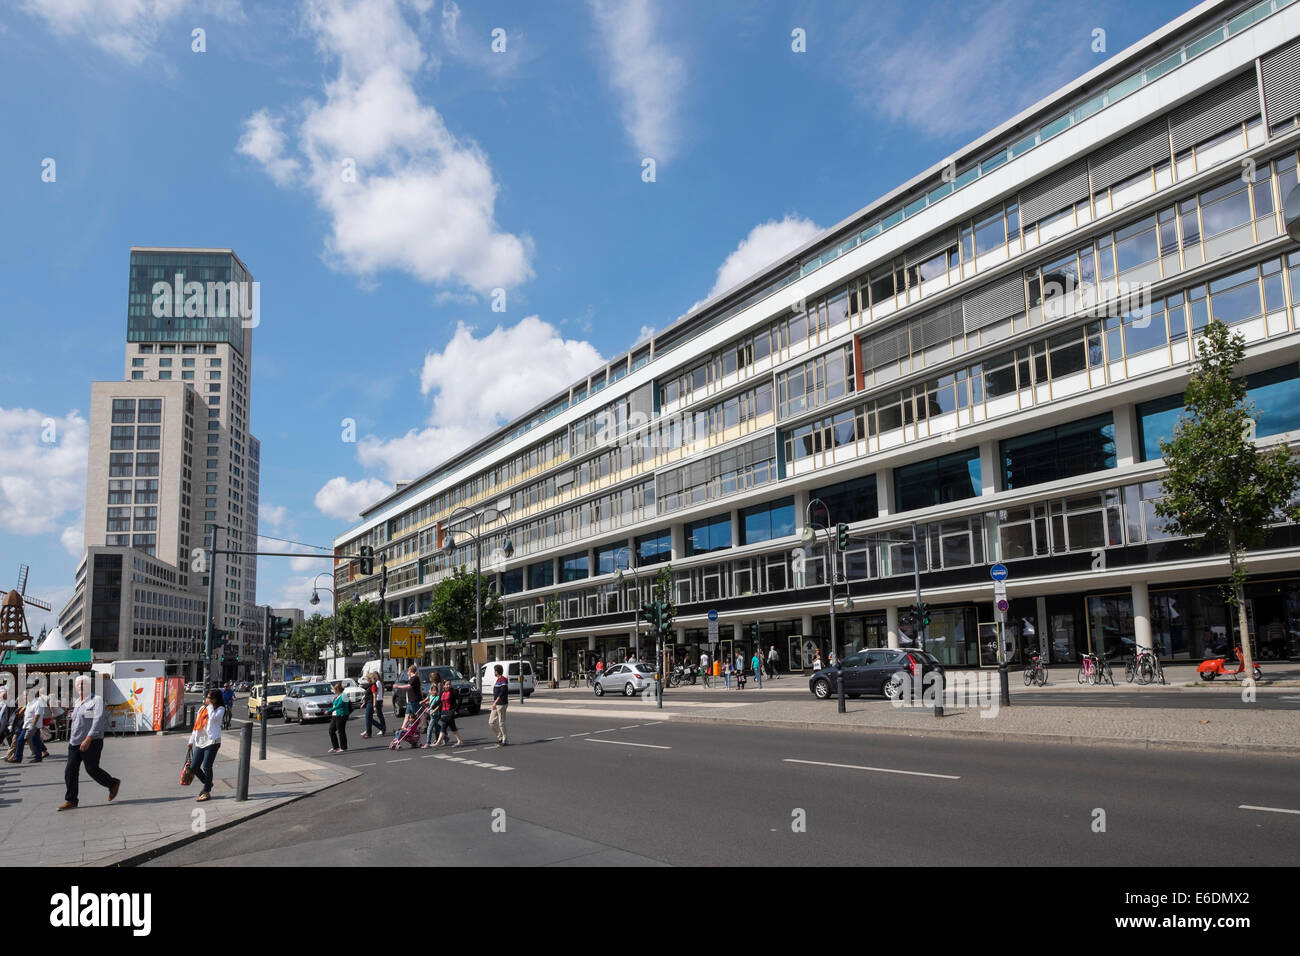 berlin shopping mall stock photos berlin shopping mall stock images alamy. Black Bedroom Furniture Sets. Home Design Ideas